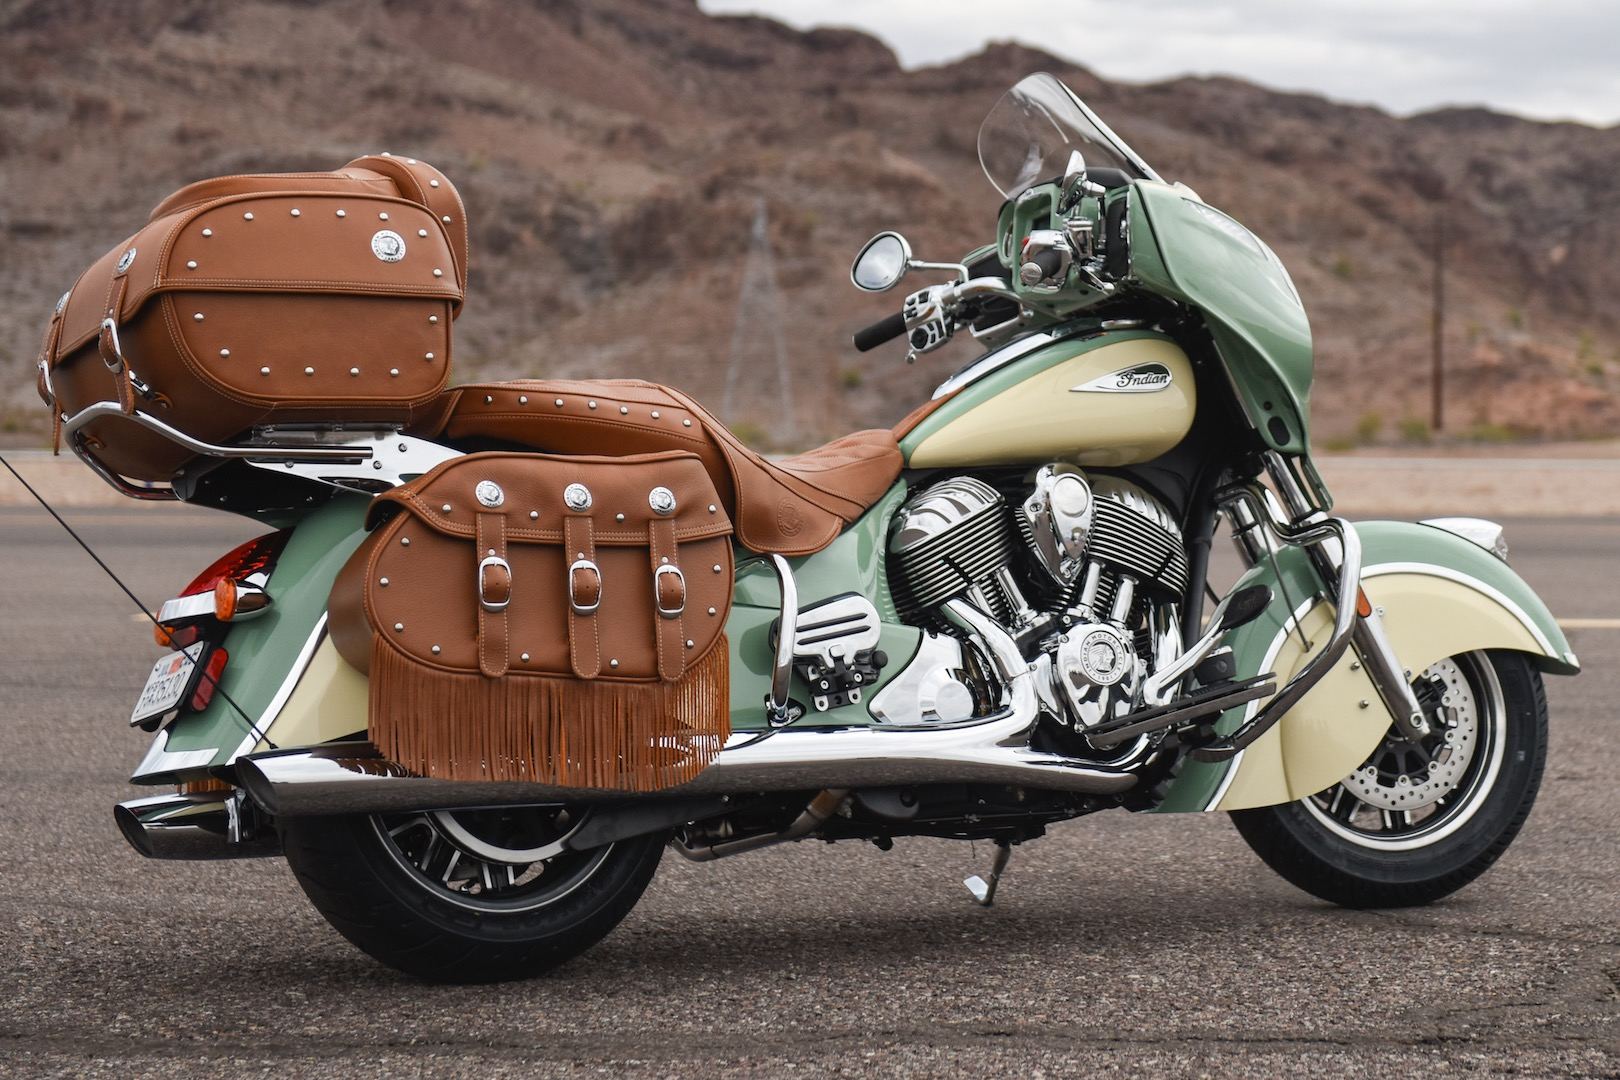 2017 Indian Roadmaster Classic Review | Master of Touring